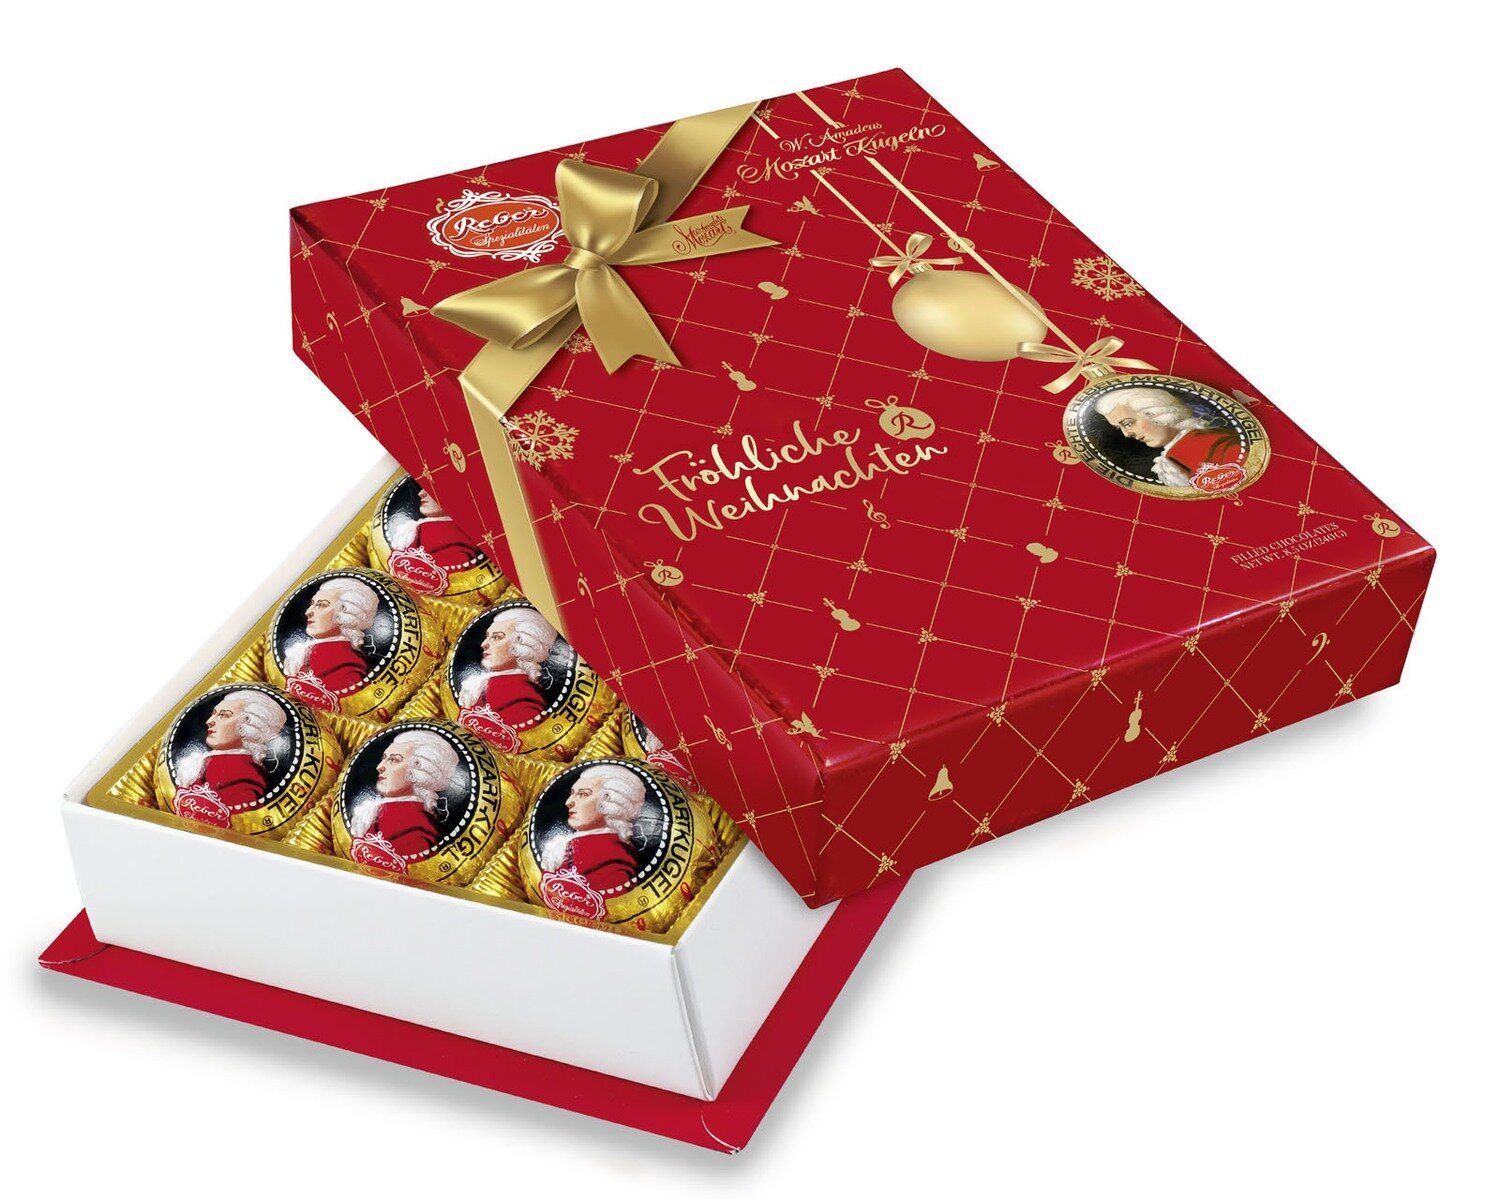 Mozart-Barock« 12er-Packung, Zartbitter-Chocolade in Christmas Decor